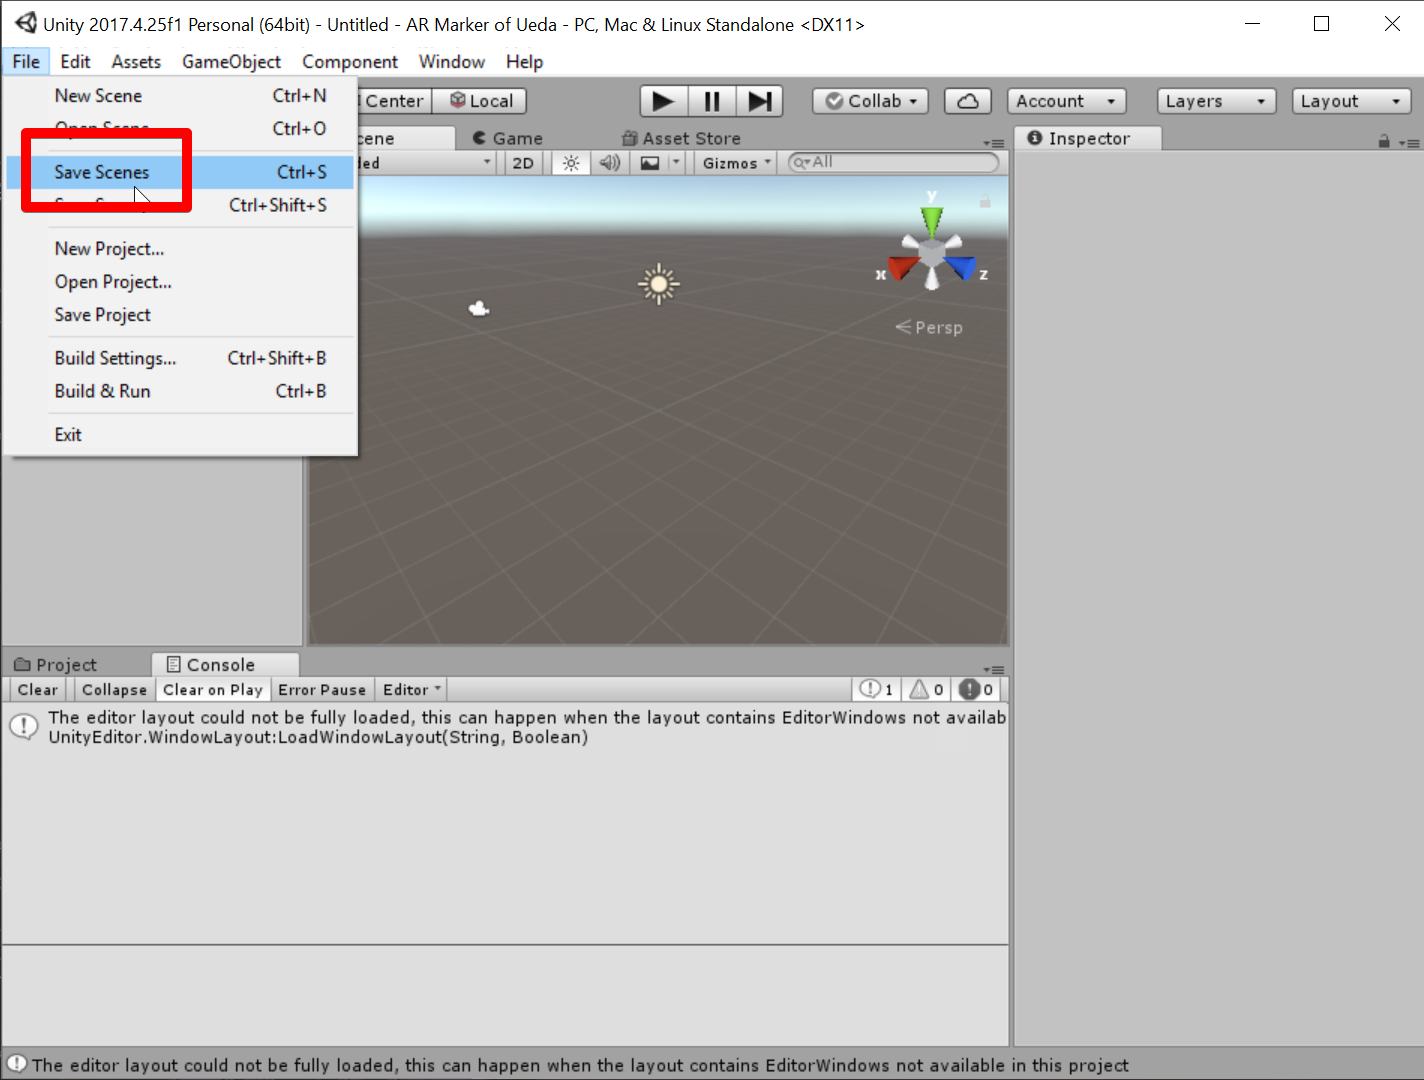 Unity 2017.4.25f1 Personal (64bit) - Untitled - AR Marker of Ueda - PC, Mac & Linux Standalone _DX11_ 2019-07-05 07.30.34.png